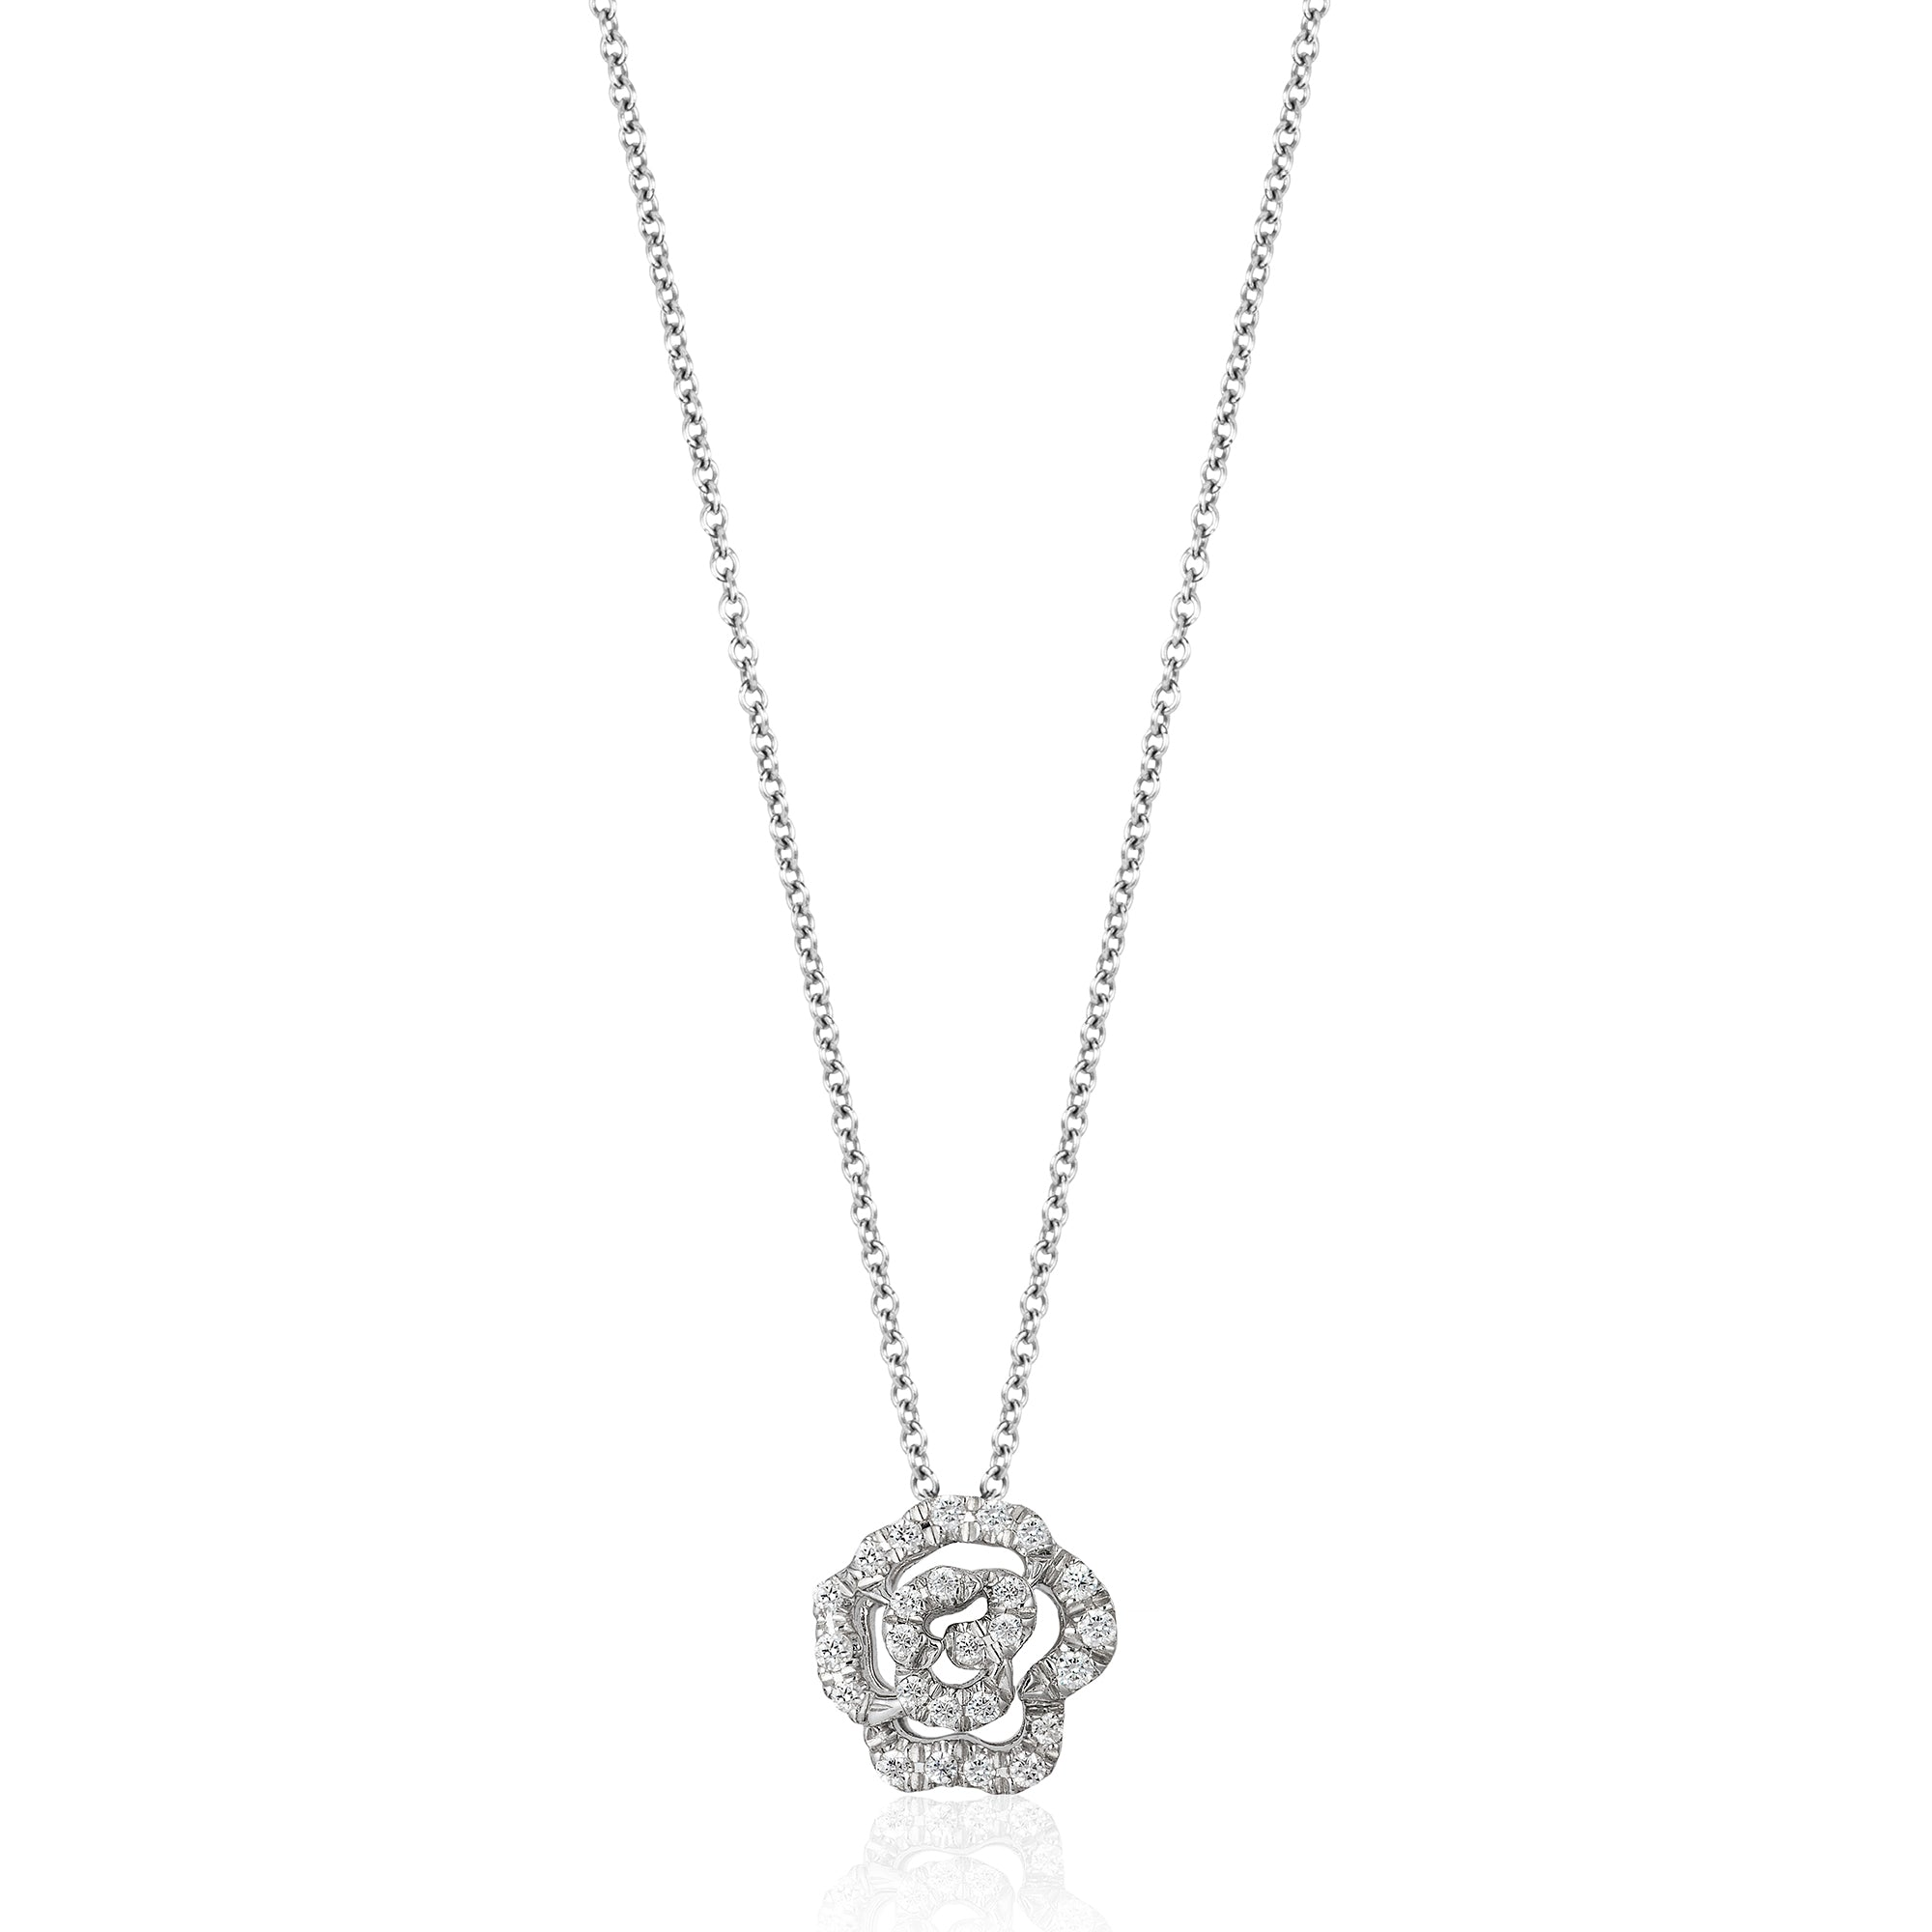 enchanted_disney-belle_rose_necklace-sterling_silver_0.16CTTW_1